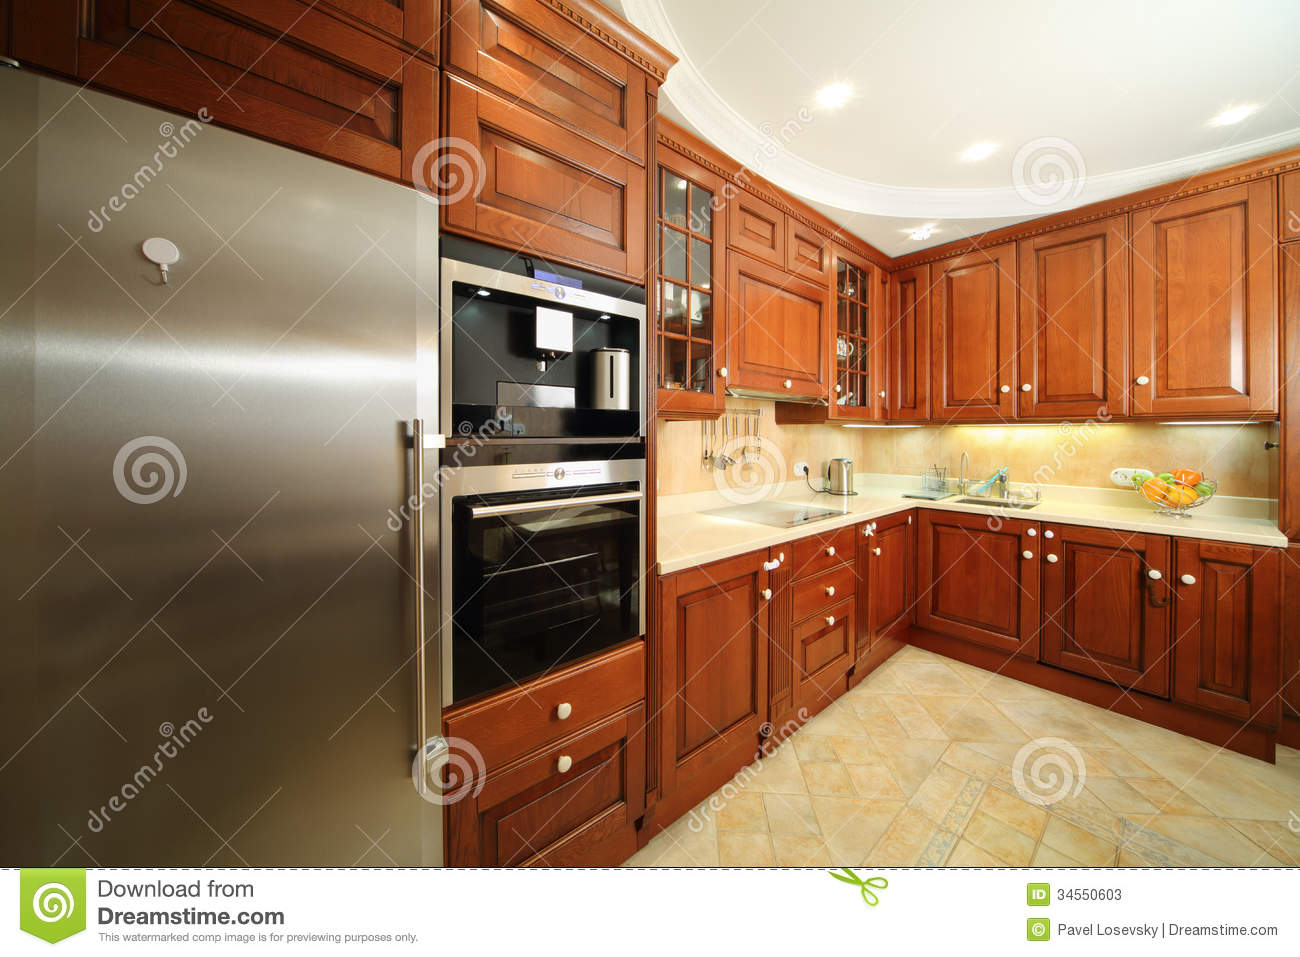 stock photos light clean kitchen wooden furniture integrated oven fridge image kitchen wooden chairs Light clean kitchen with wooden furniture